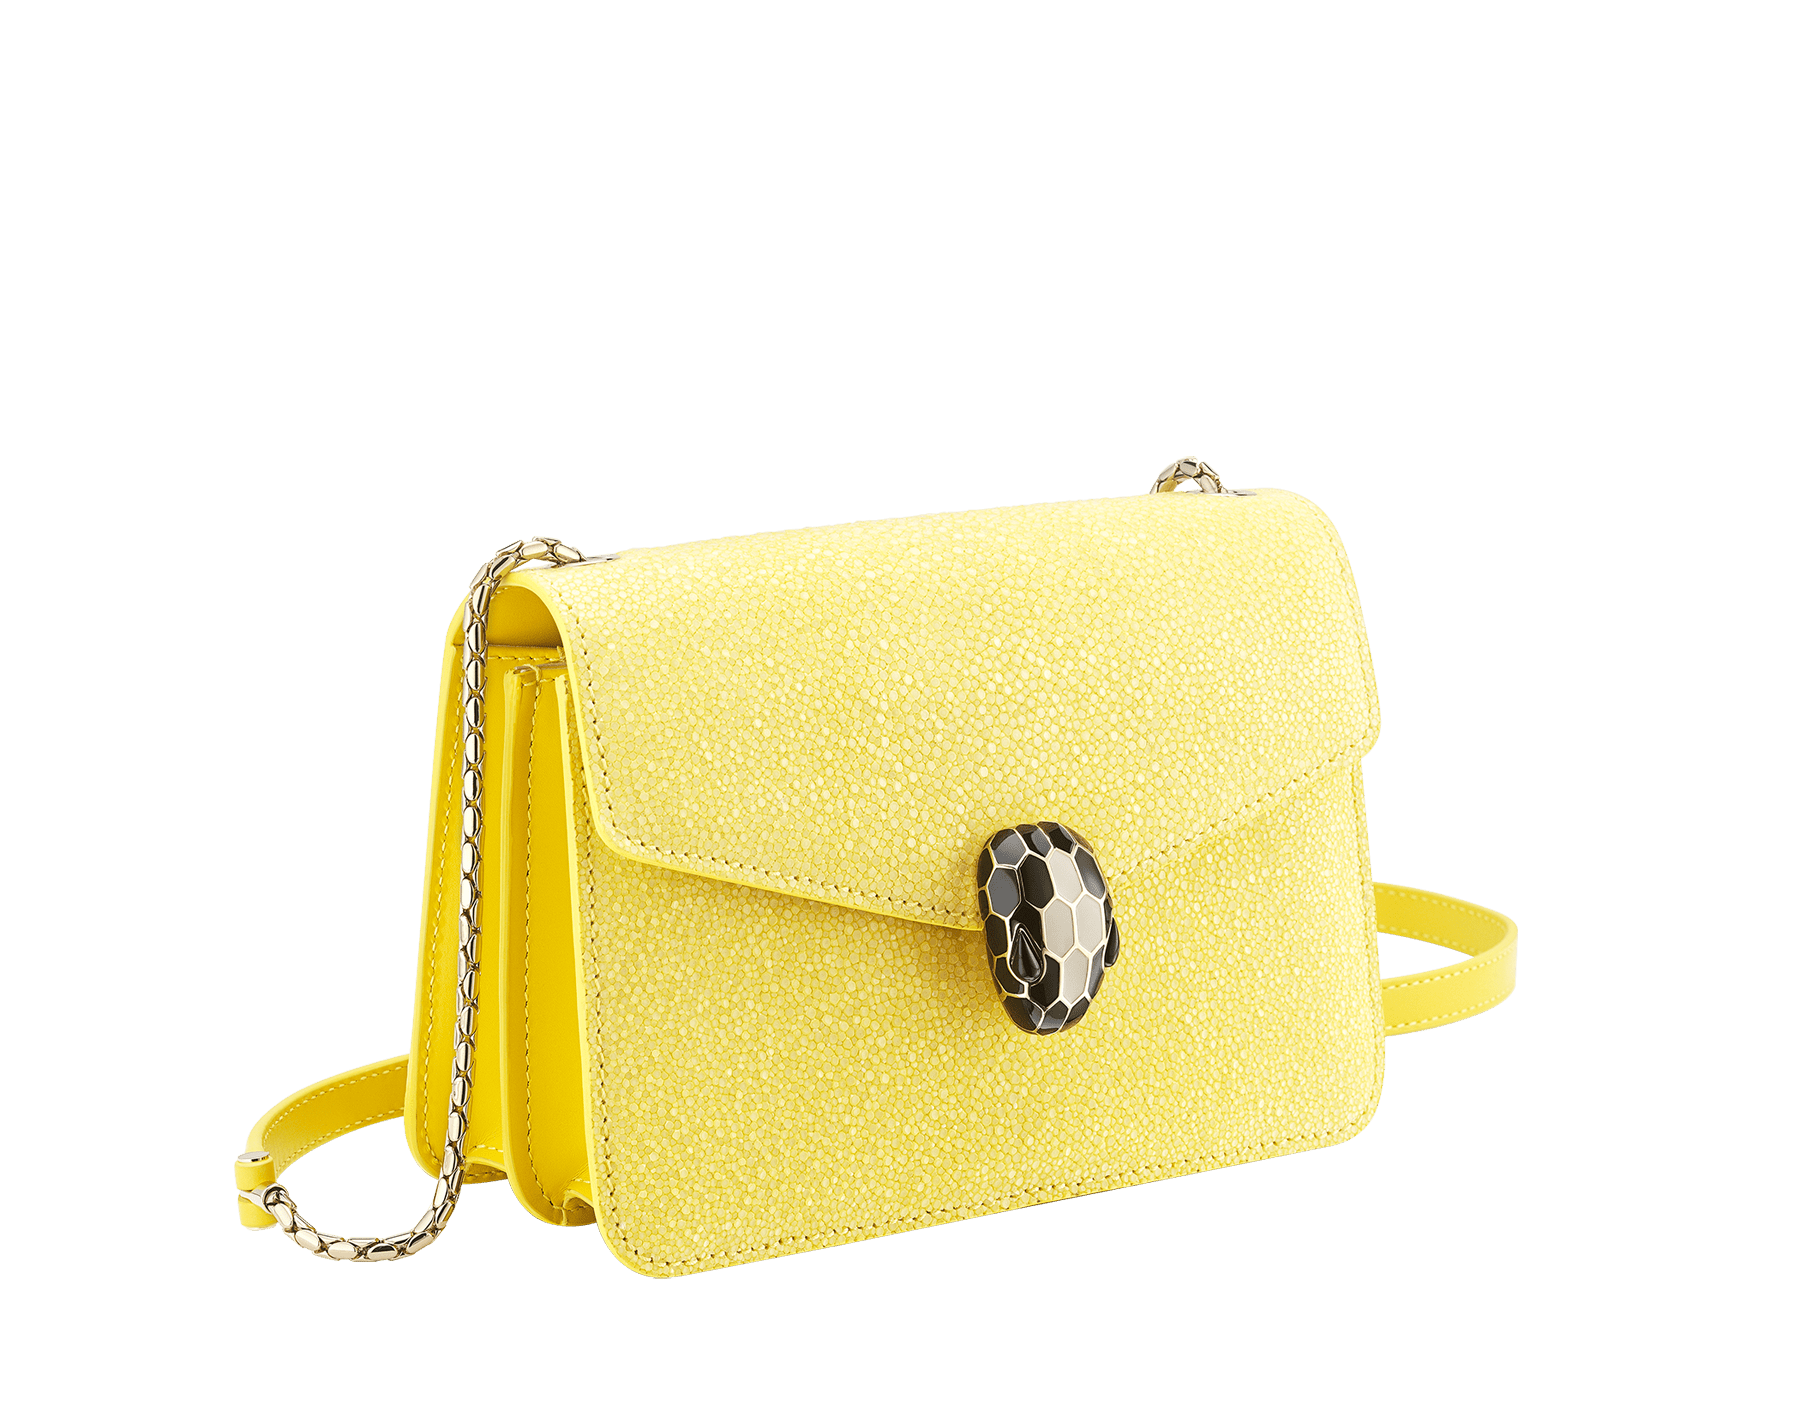 """Serpenti Forever"" crossbody bag in daisy topaz full galuchat skin body and daisy topaz calf leather sides. Iconic snakehead closure in light gold plated brass enriched with black and white enamel and black onyx eyes. 290242 image 2"